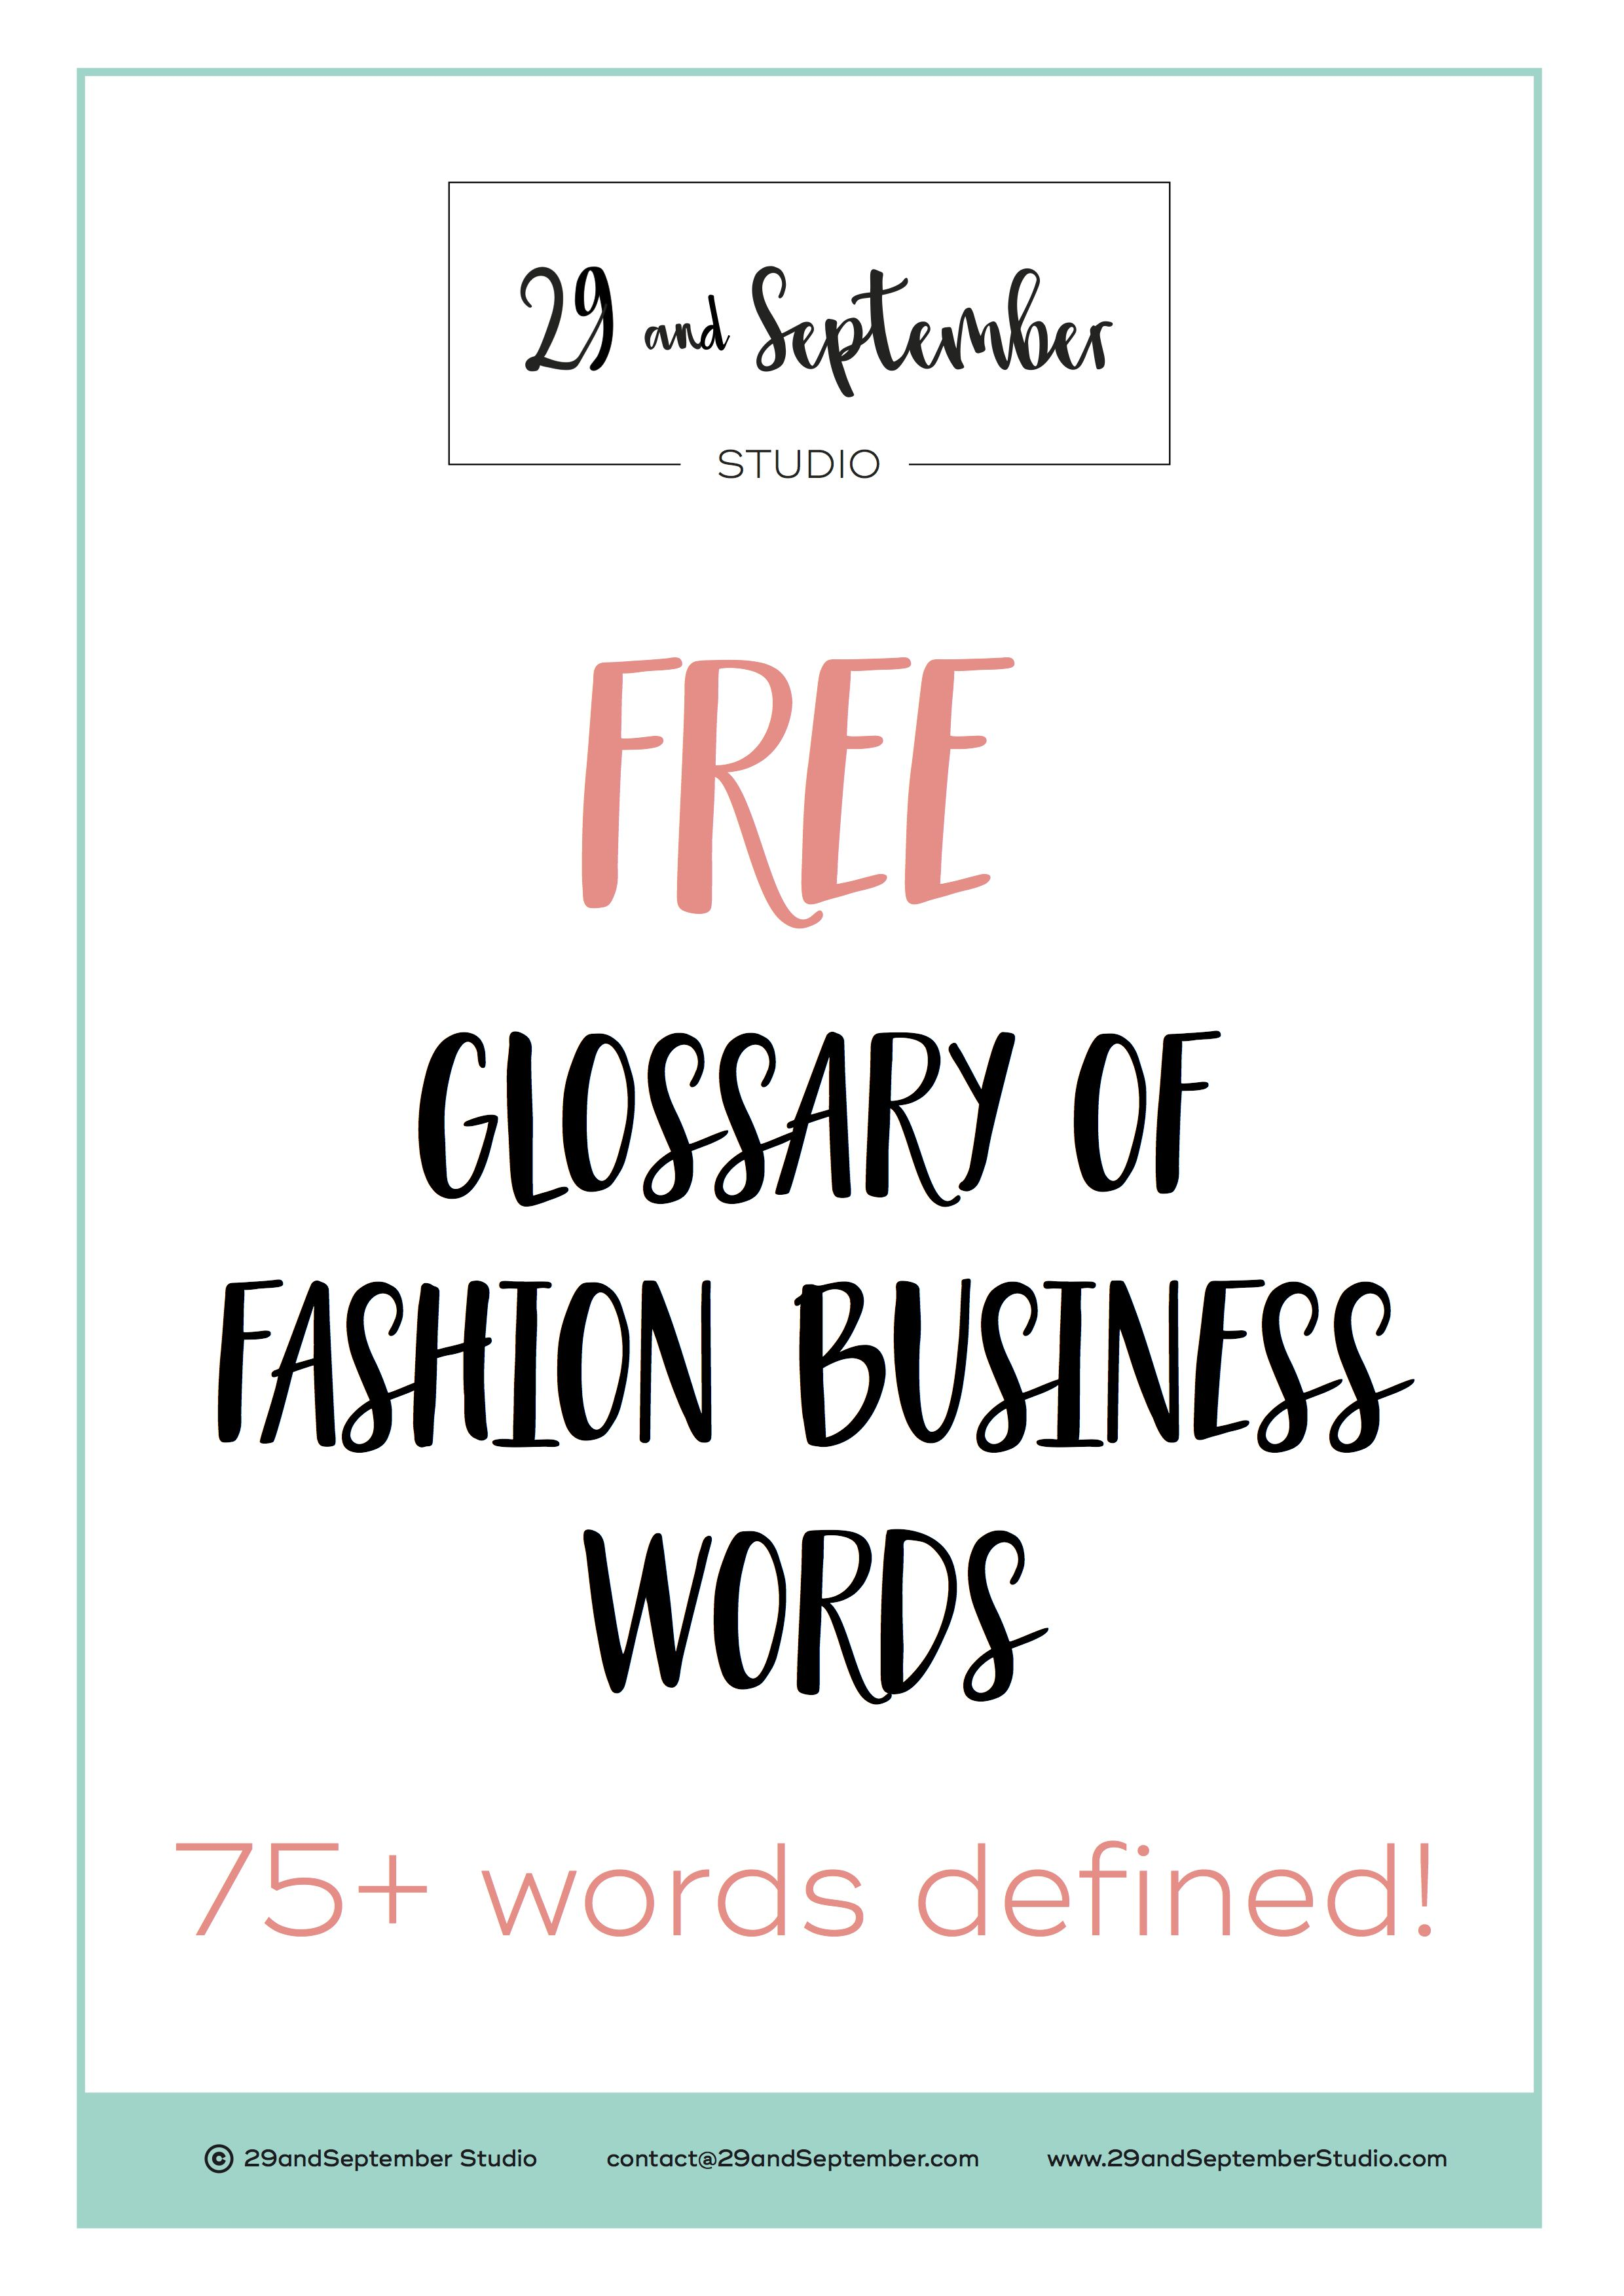 How do you find the terminology of fashion words?